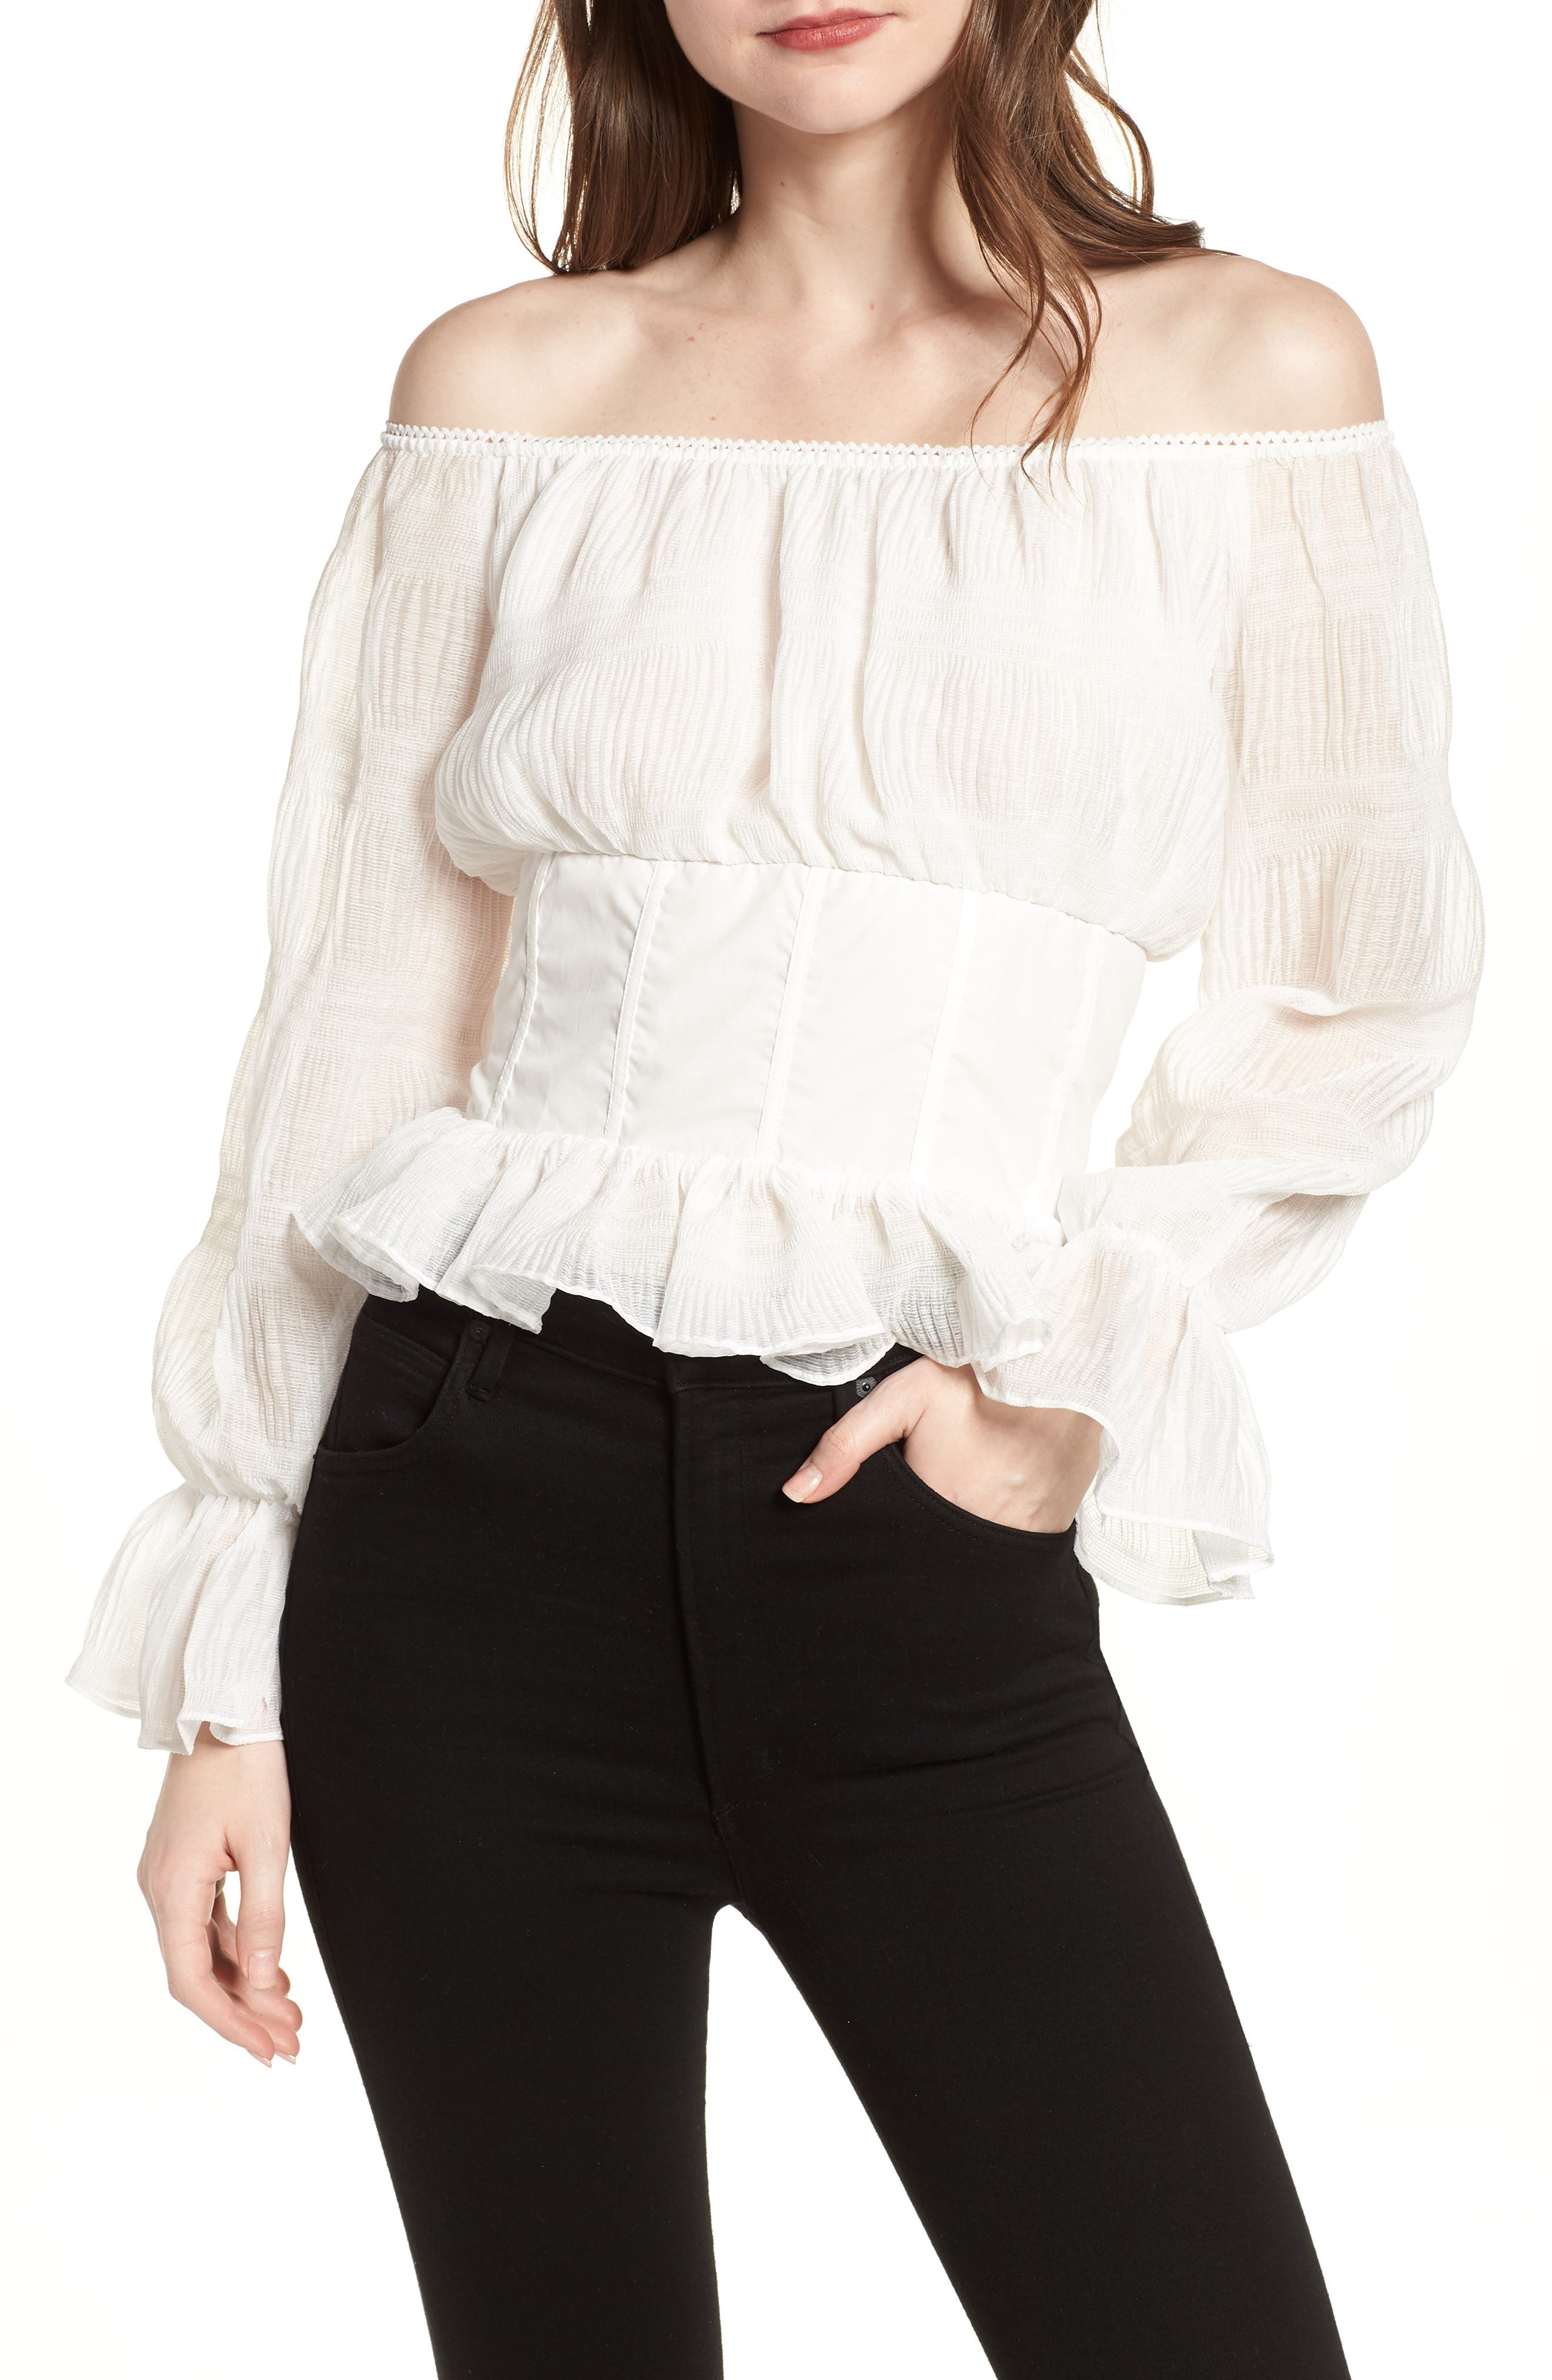 LOST INK Date Night Off the Shoulder Chiffon Top